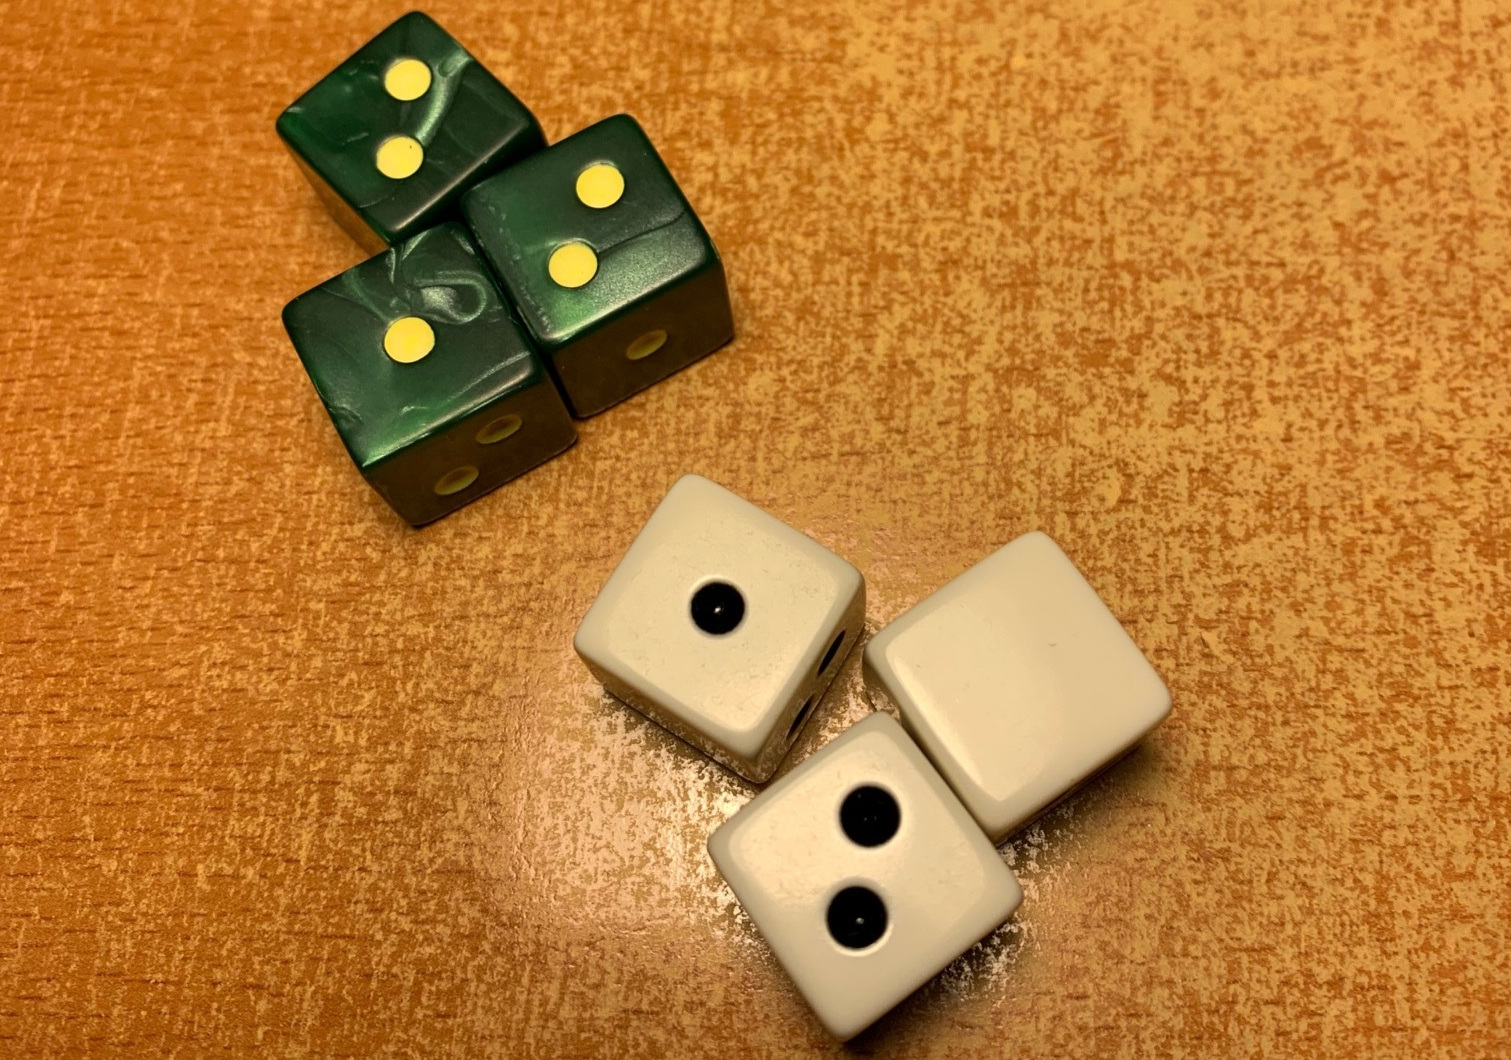 Premium pearlescent green die with yellow pips vs. the standard bones